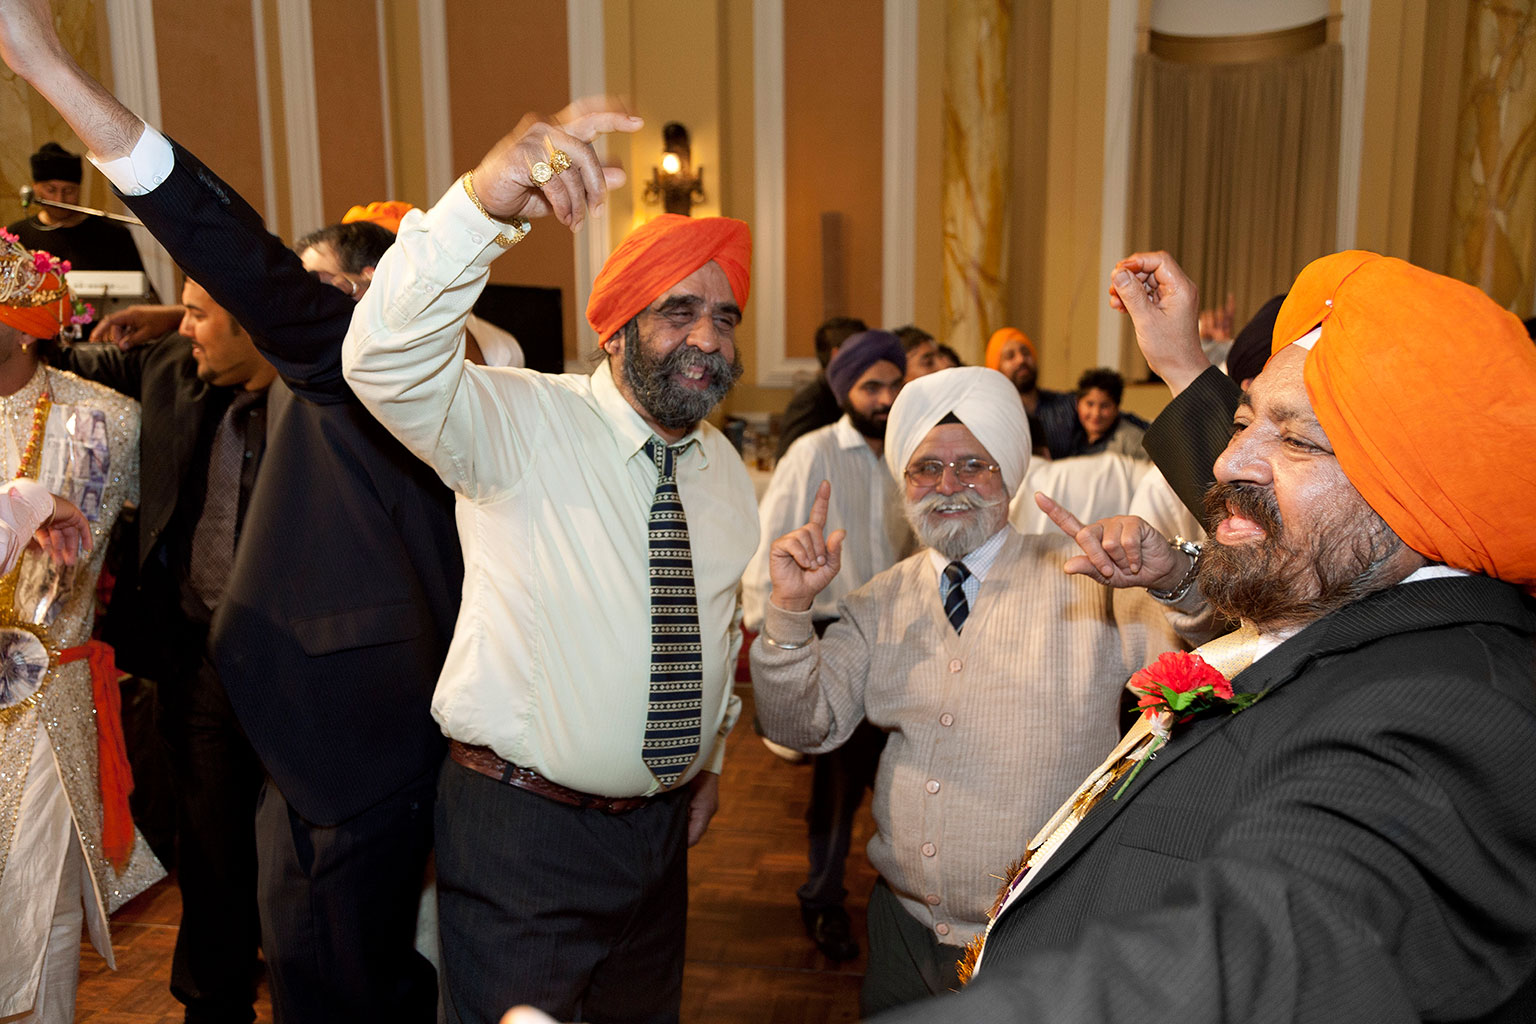 Sikh wedding at City Hall, Cardiff, Wales, 2008 - © Martin Parr / Magnum Photos / Rocket Gallery